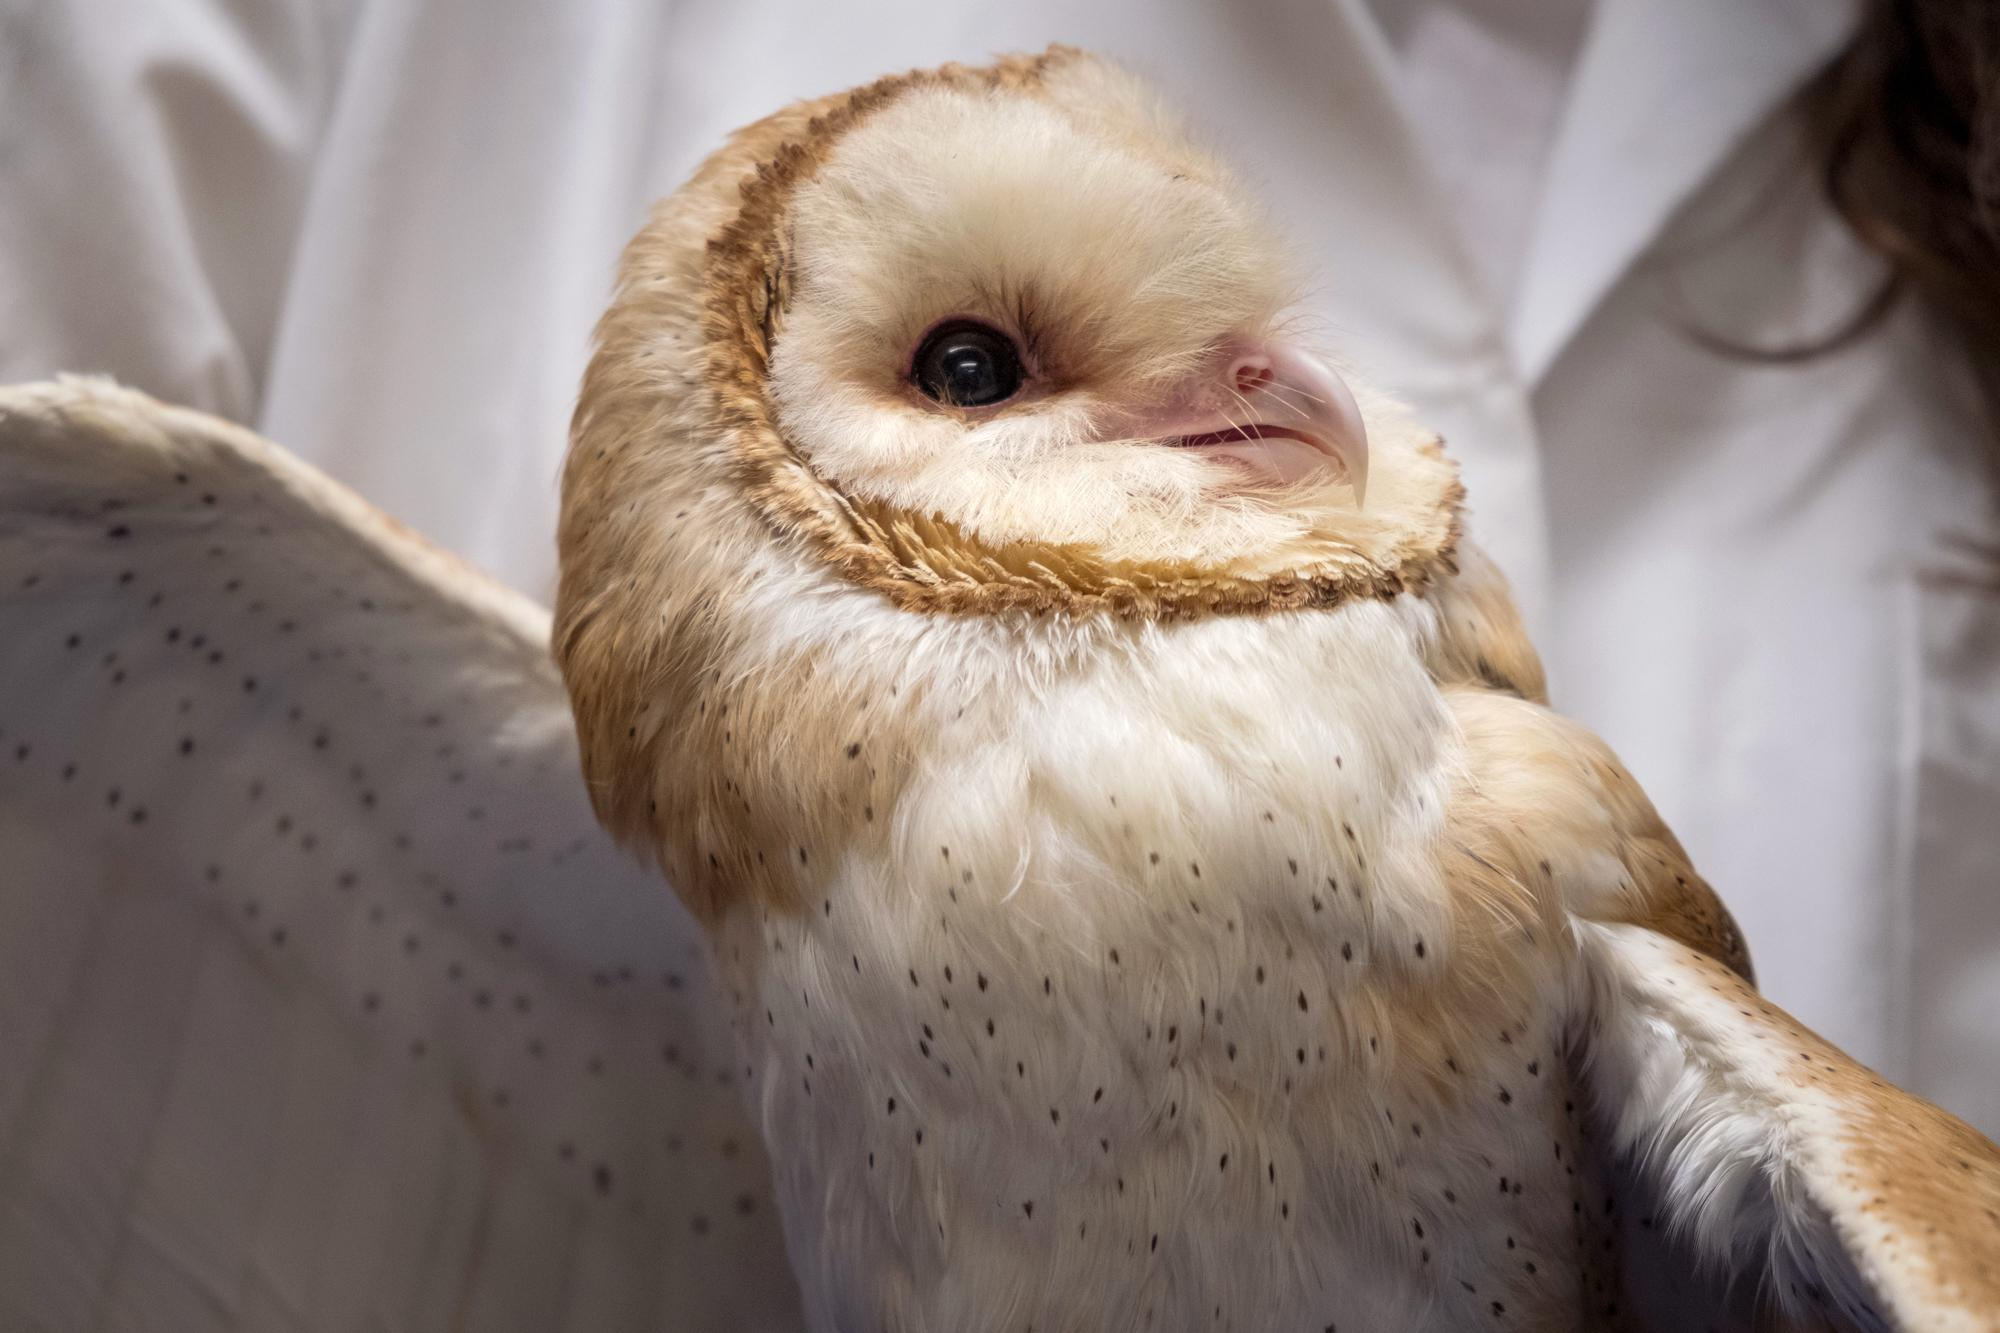 Scientists Study Barn Owls To Understand Why People With ...